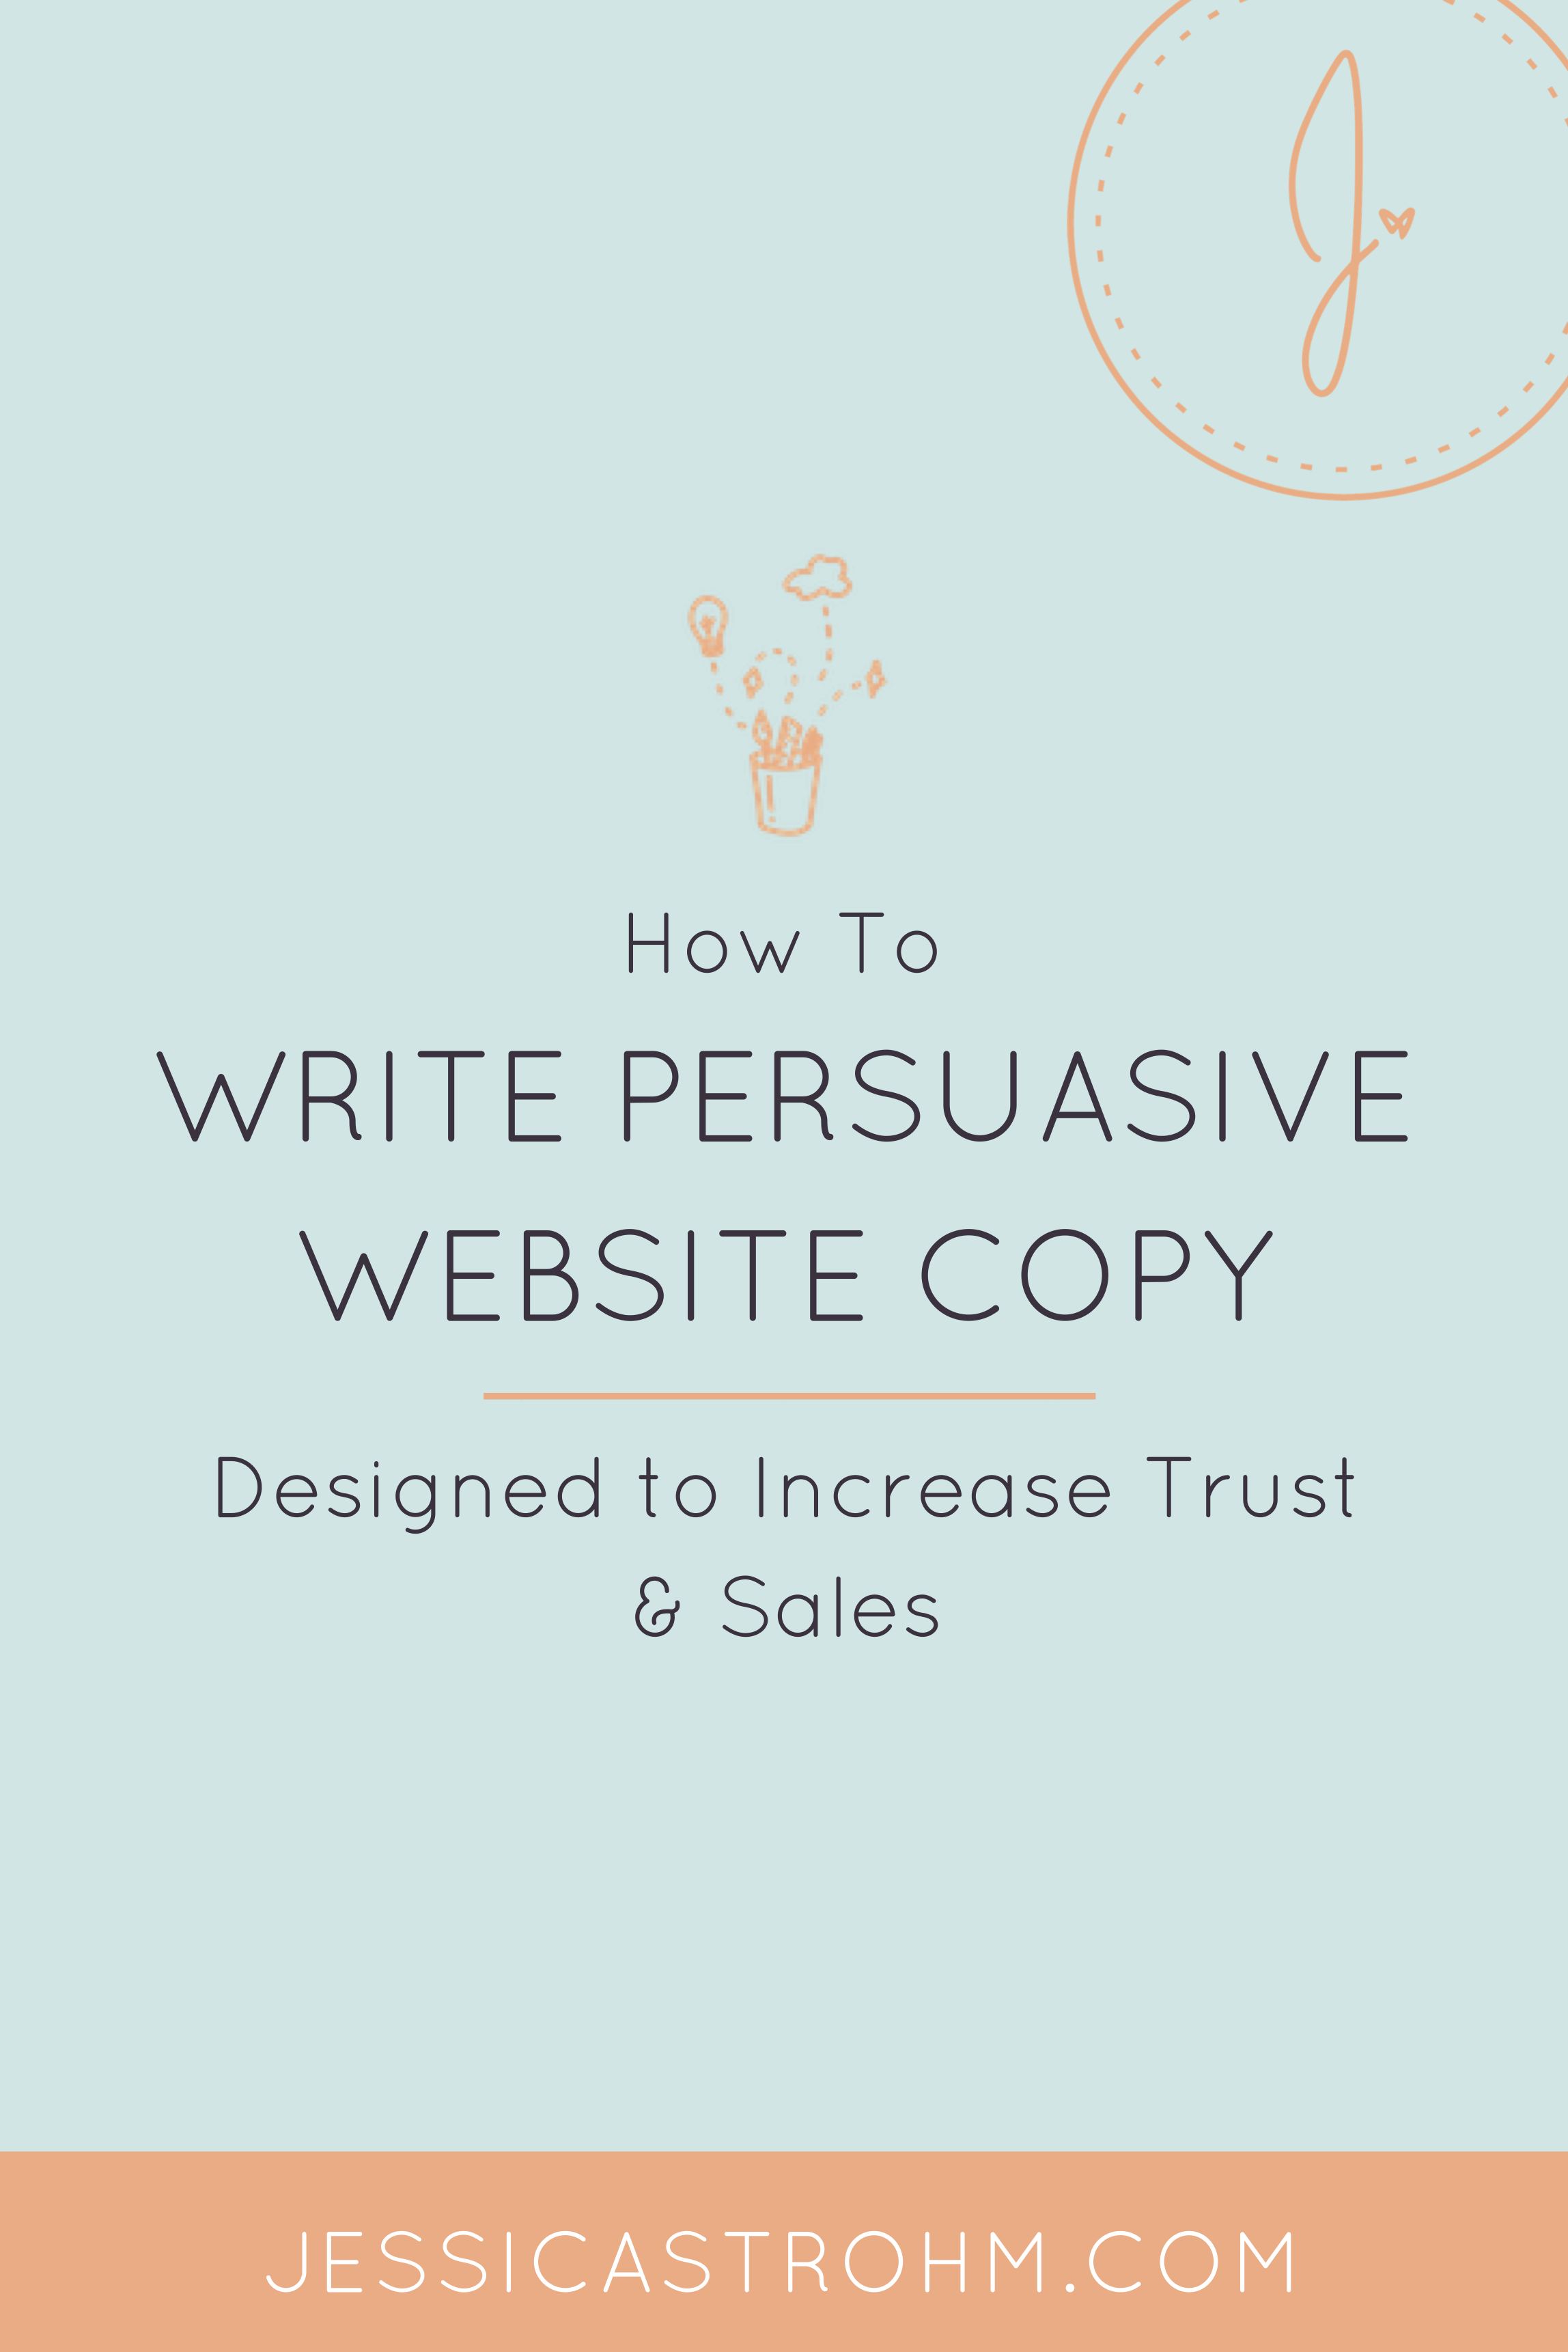 How to write persuasive website copy for your creative business that converts visitors into clients or customers.